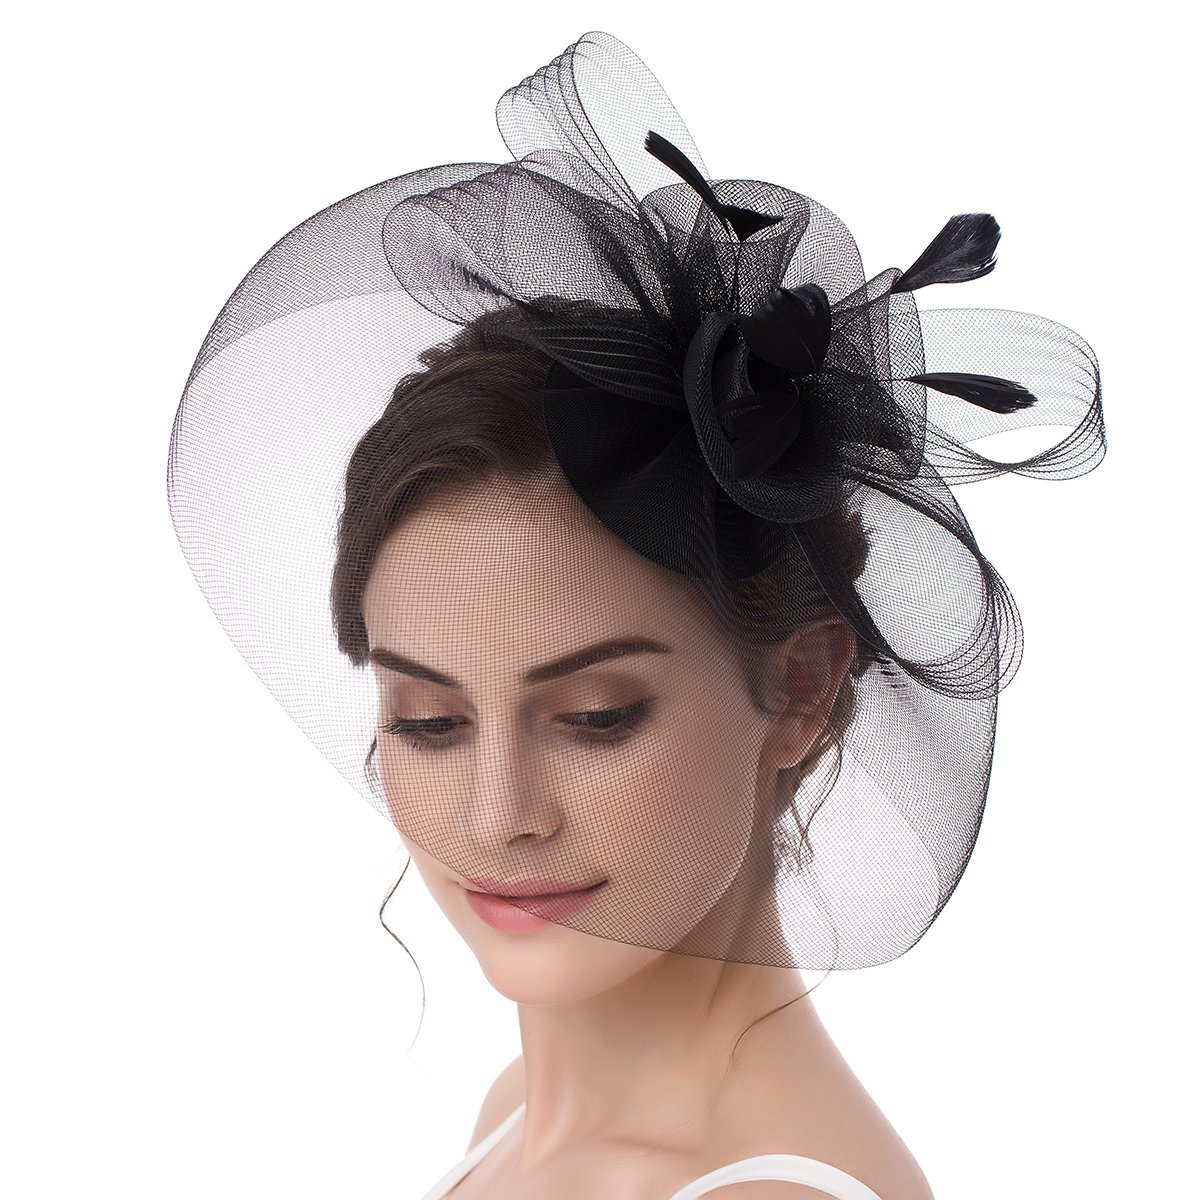 ABaowedding Fascinator Bow Feather Cocktail Party Hair Clip Pillbox Hat (Black)